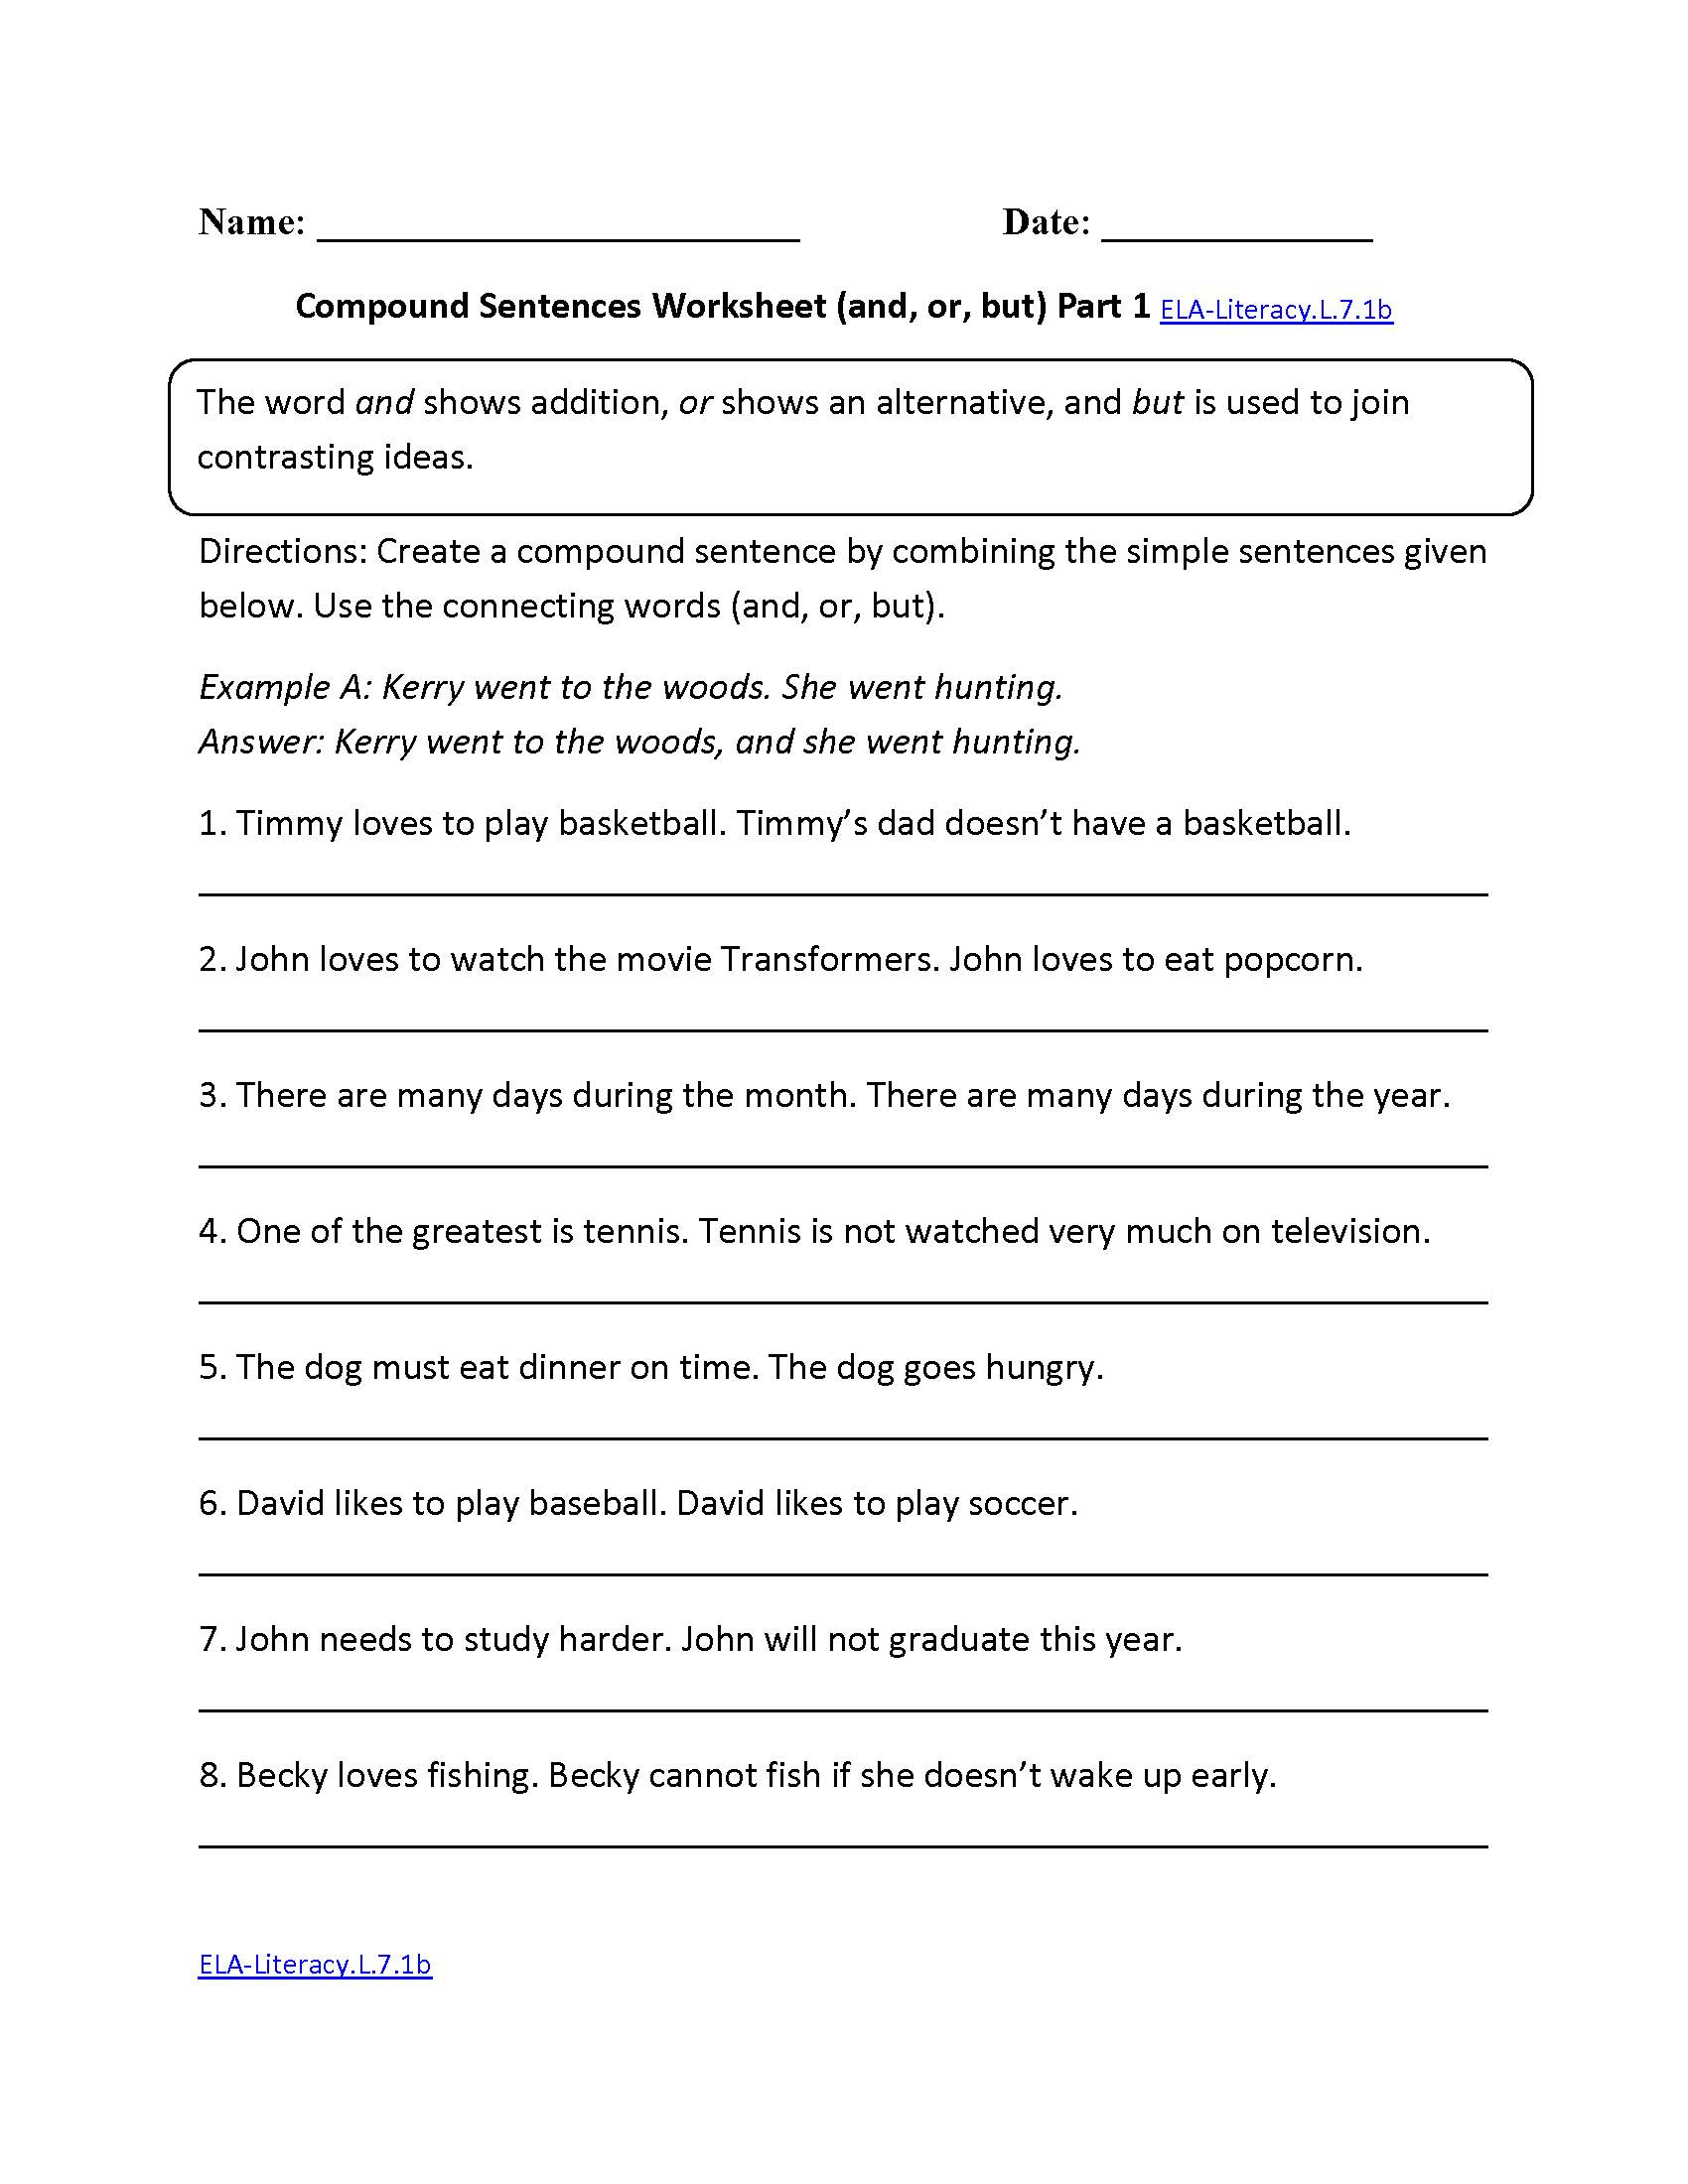 Compound Sentences Worksheet Ela Literacy L 7 1b Language